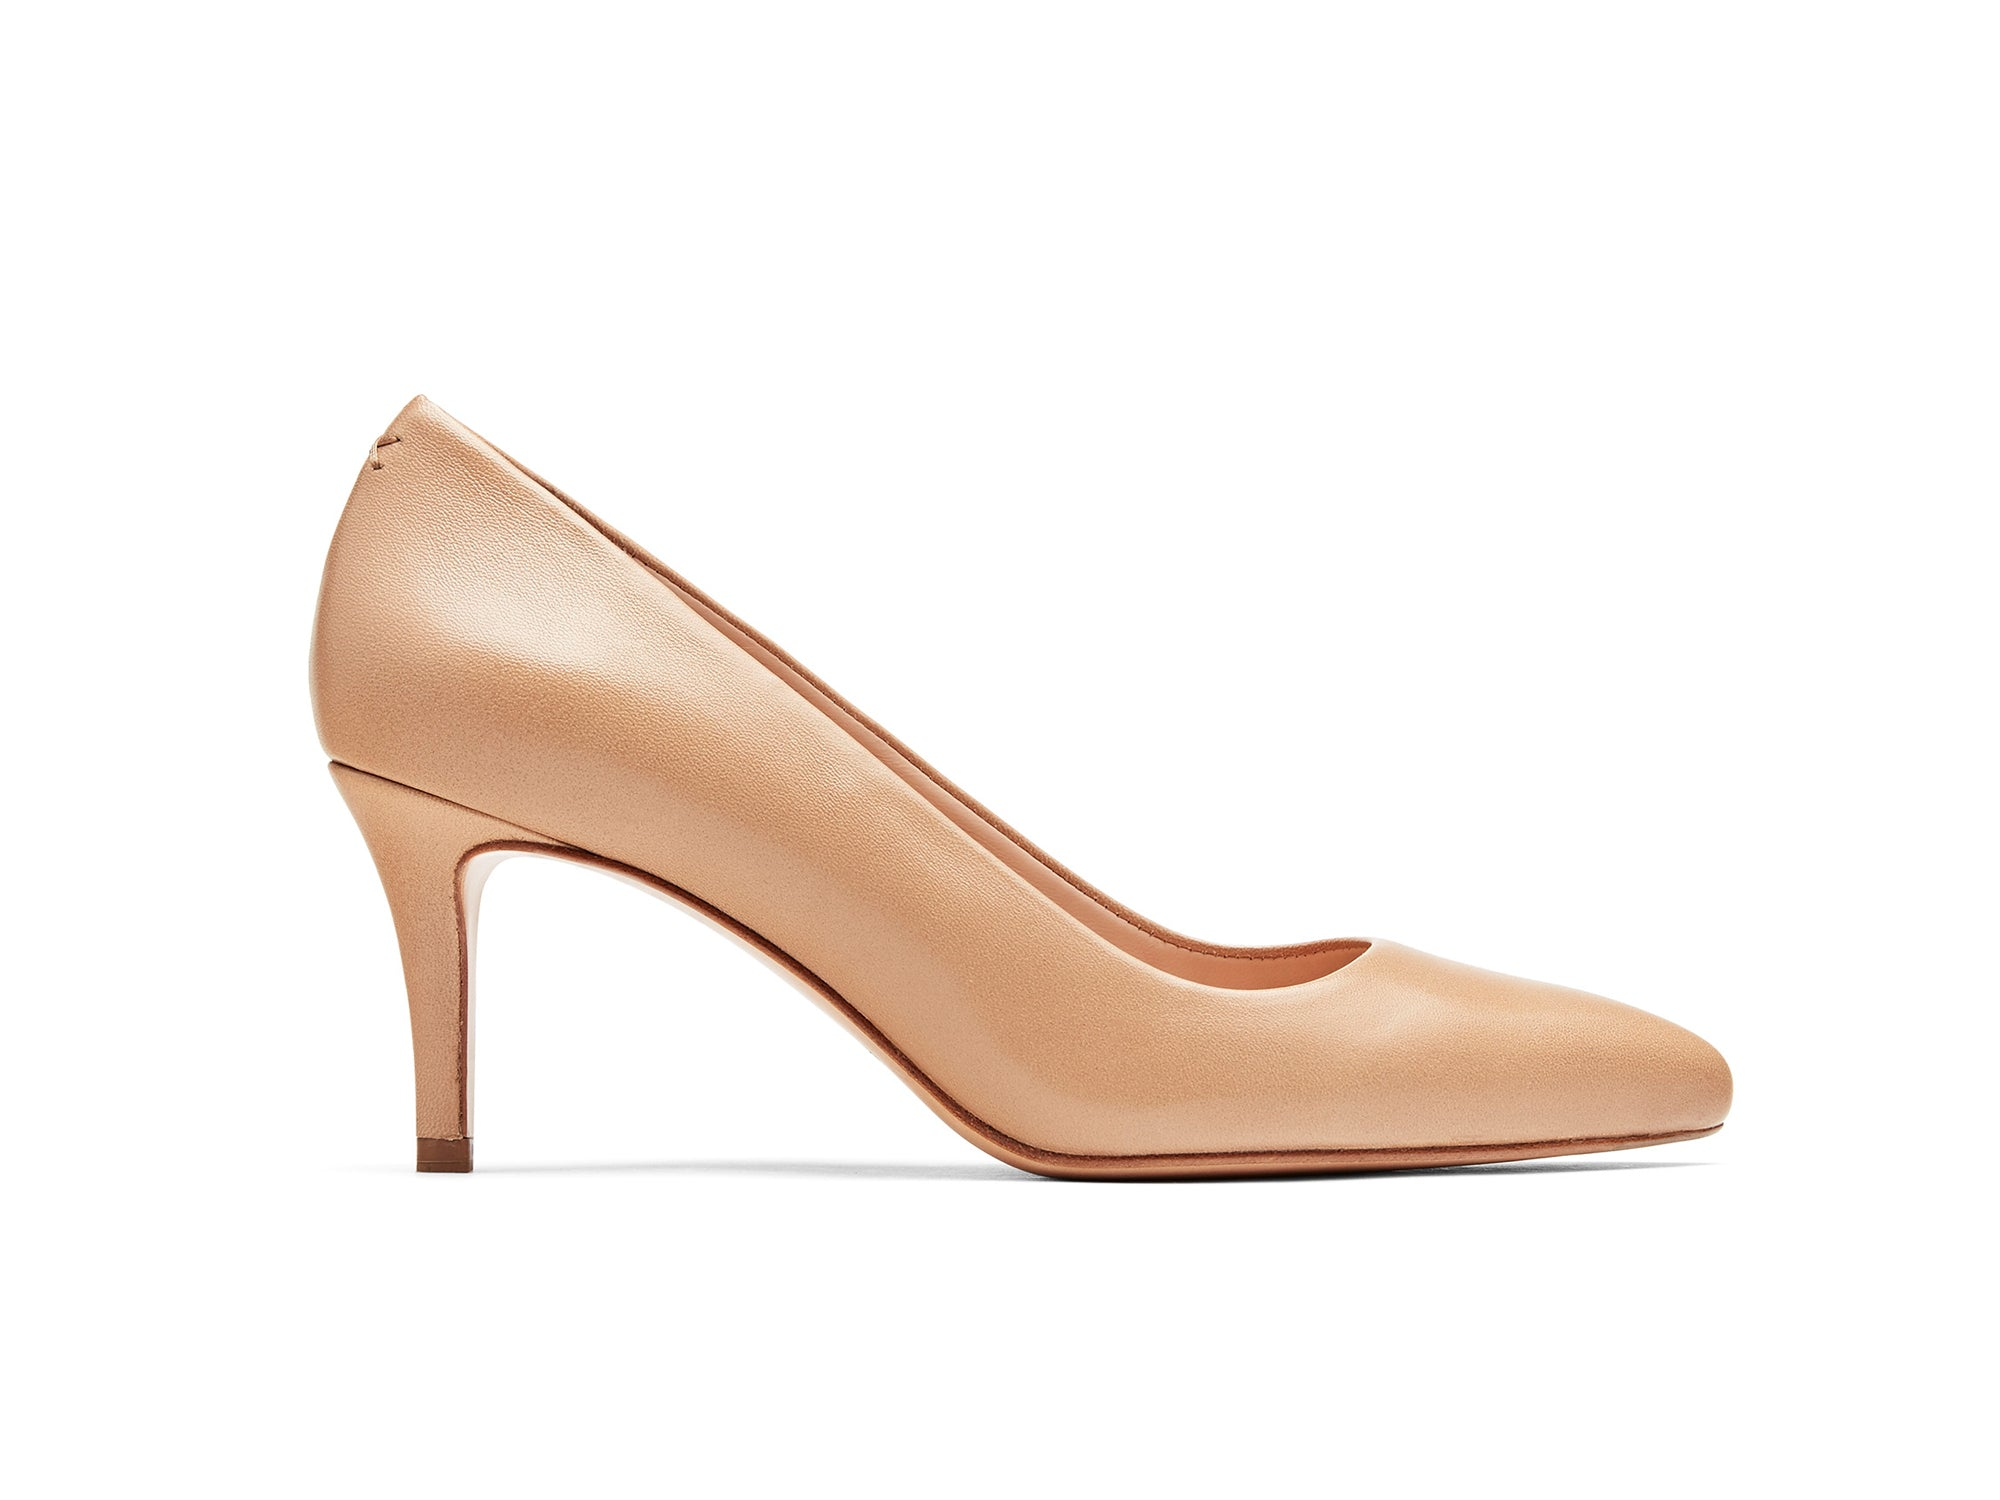 Lola Pumps in Almond Nappa